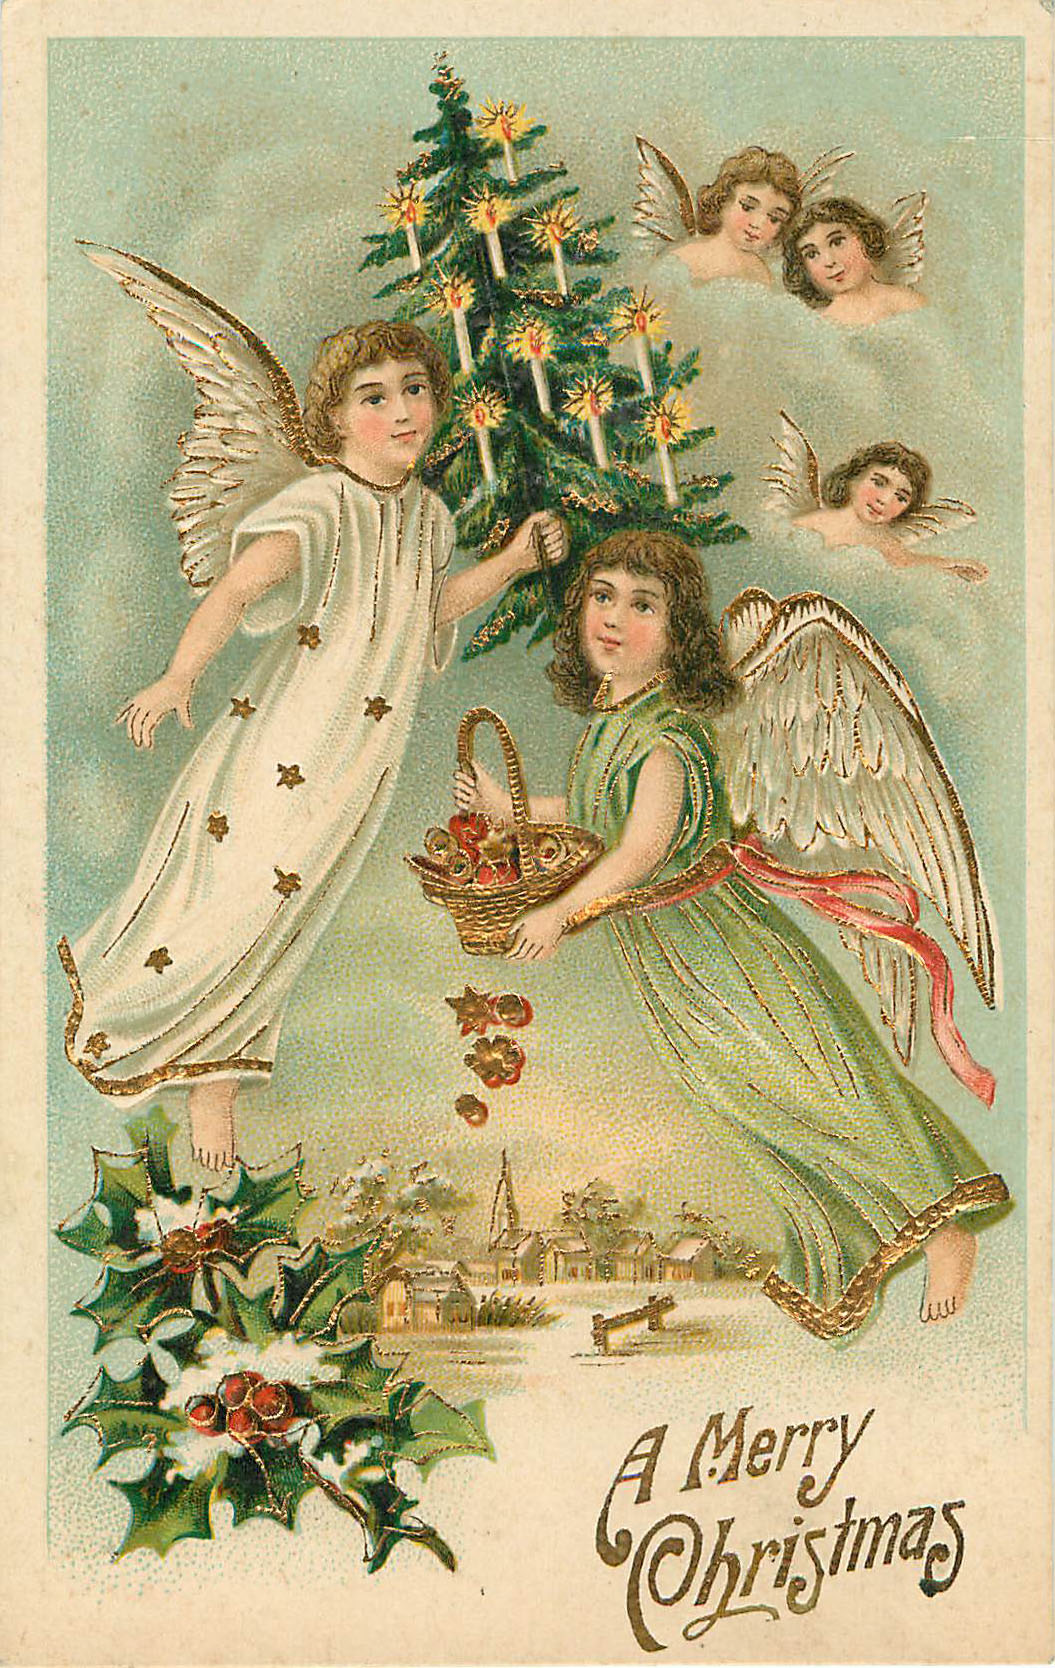 A Merry Christmas - Angels with Christmas tree and candles